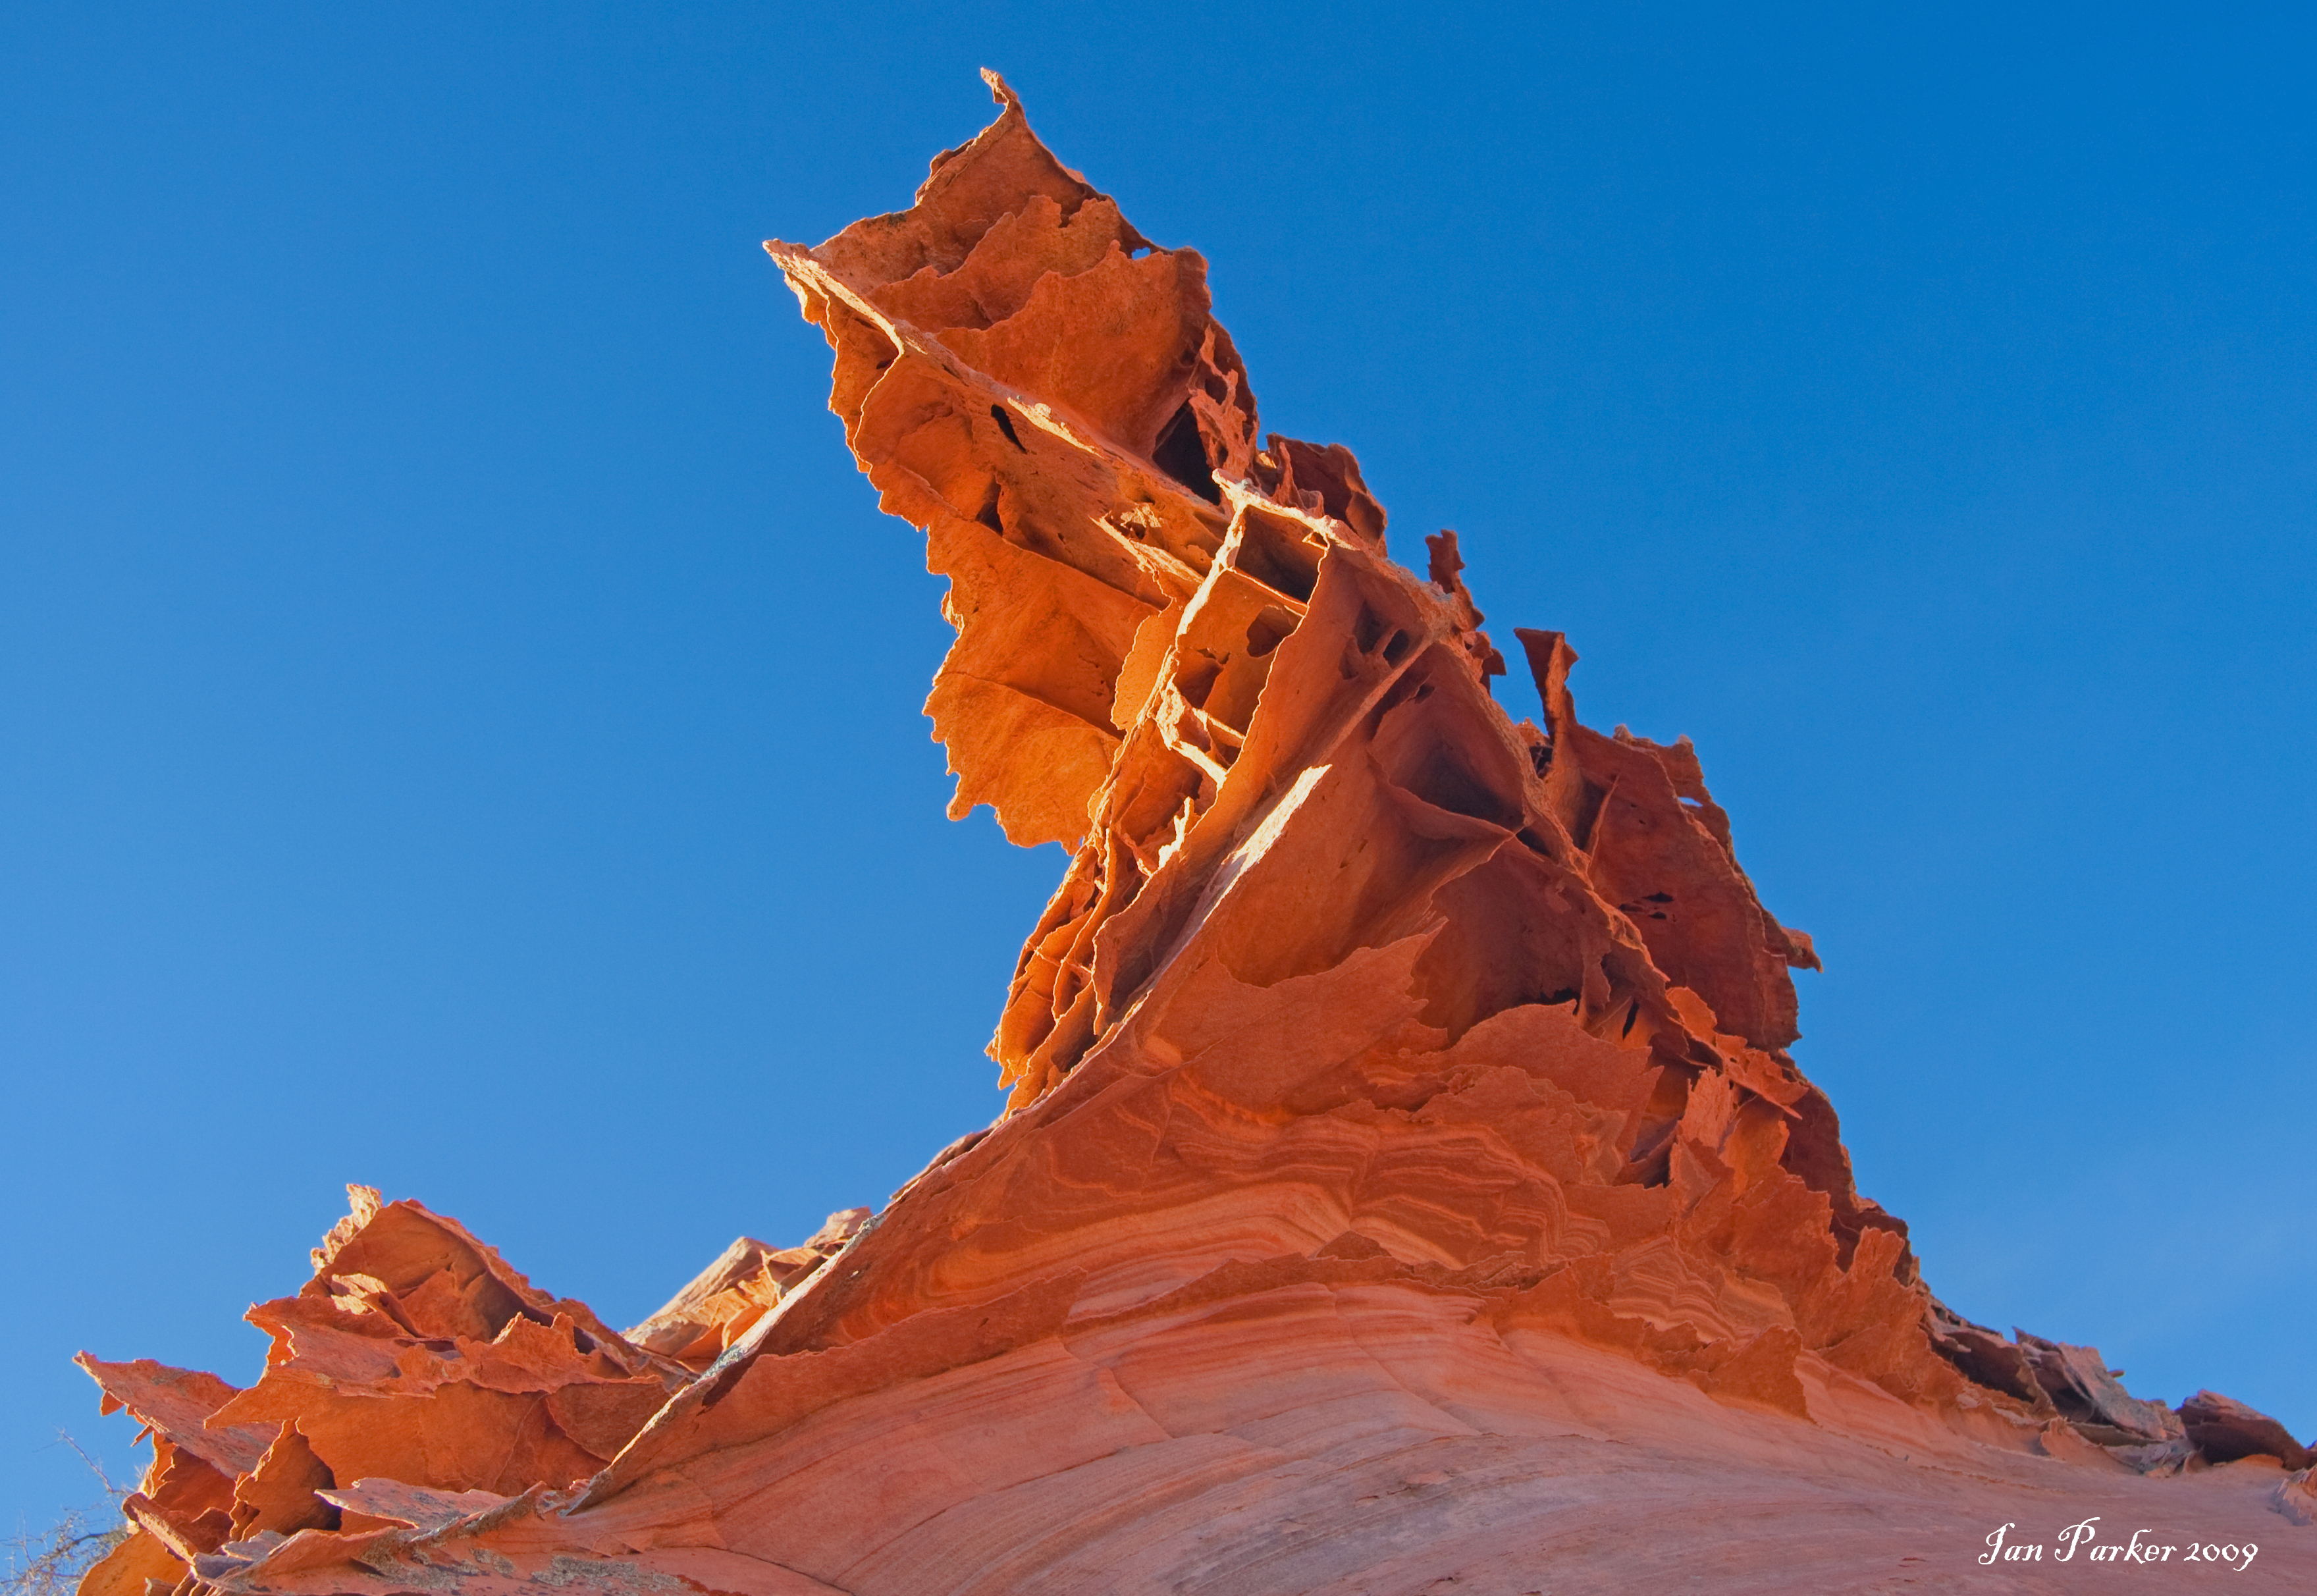 Evanescent Light : The Wave, Coyote Buttes